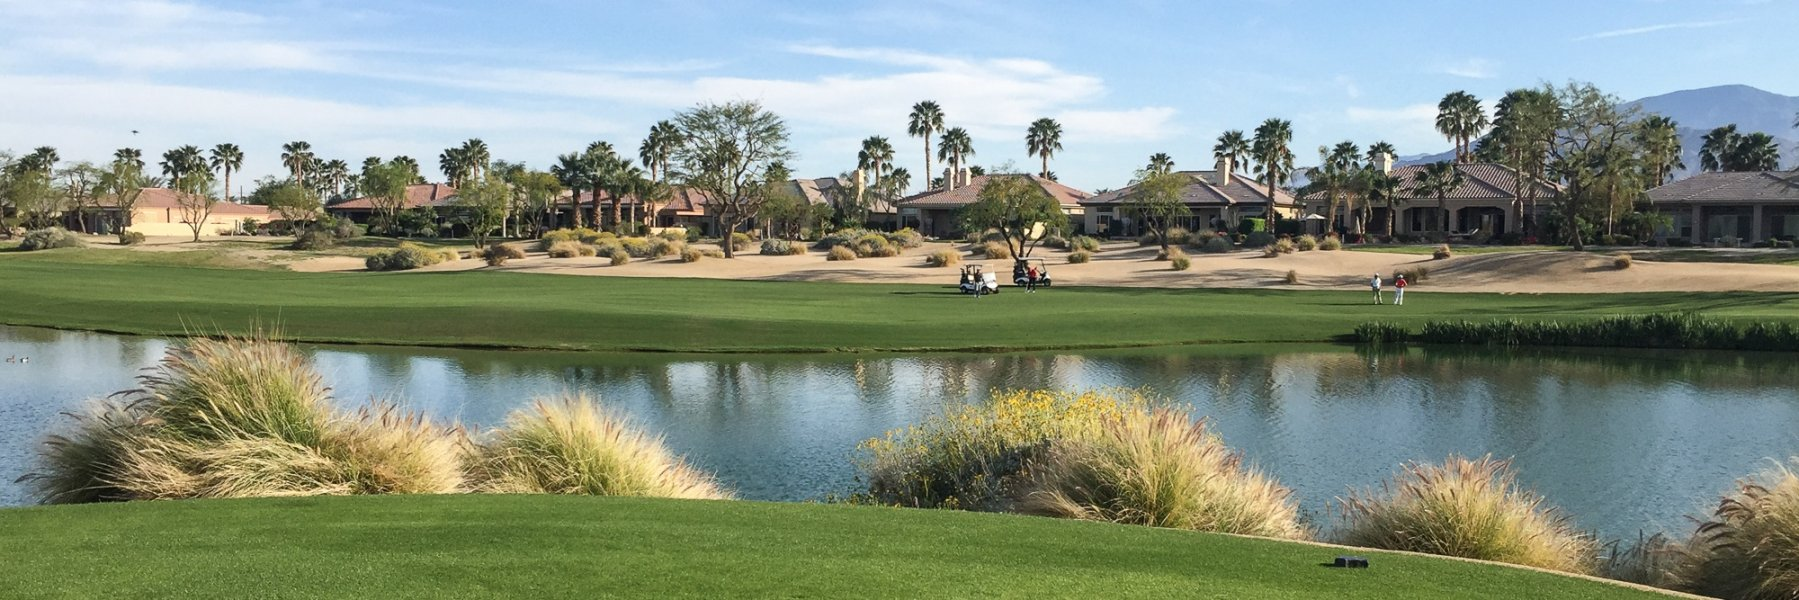 PGA West Greg Norman is a community of homes in La Quinta California